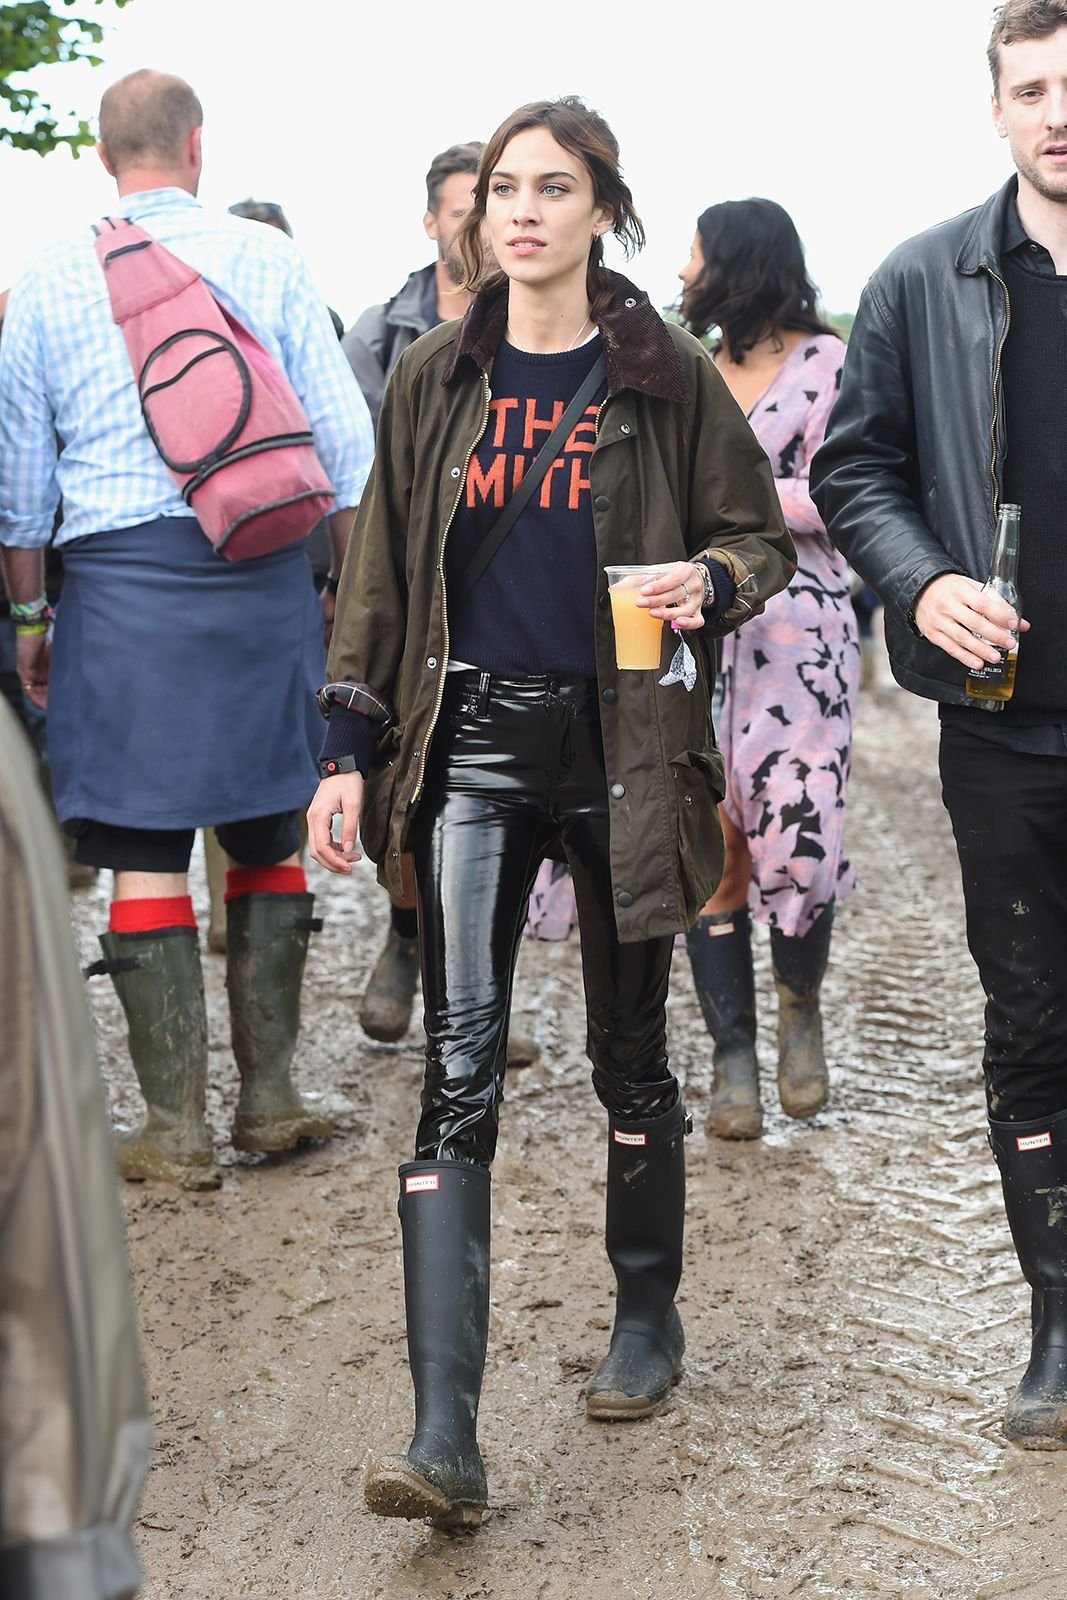 Glastonbury Street Style How To Look Good While Covered